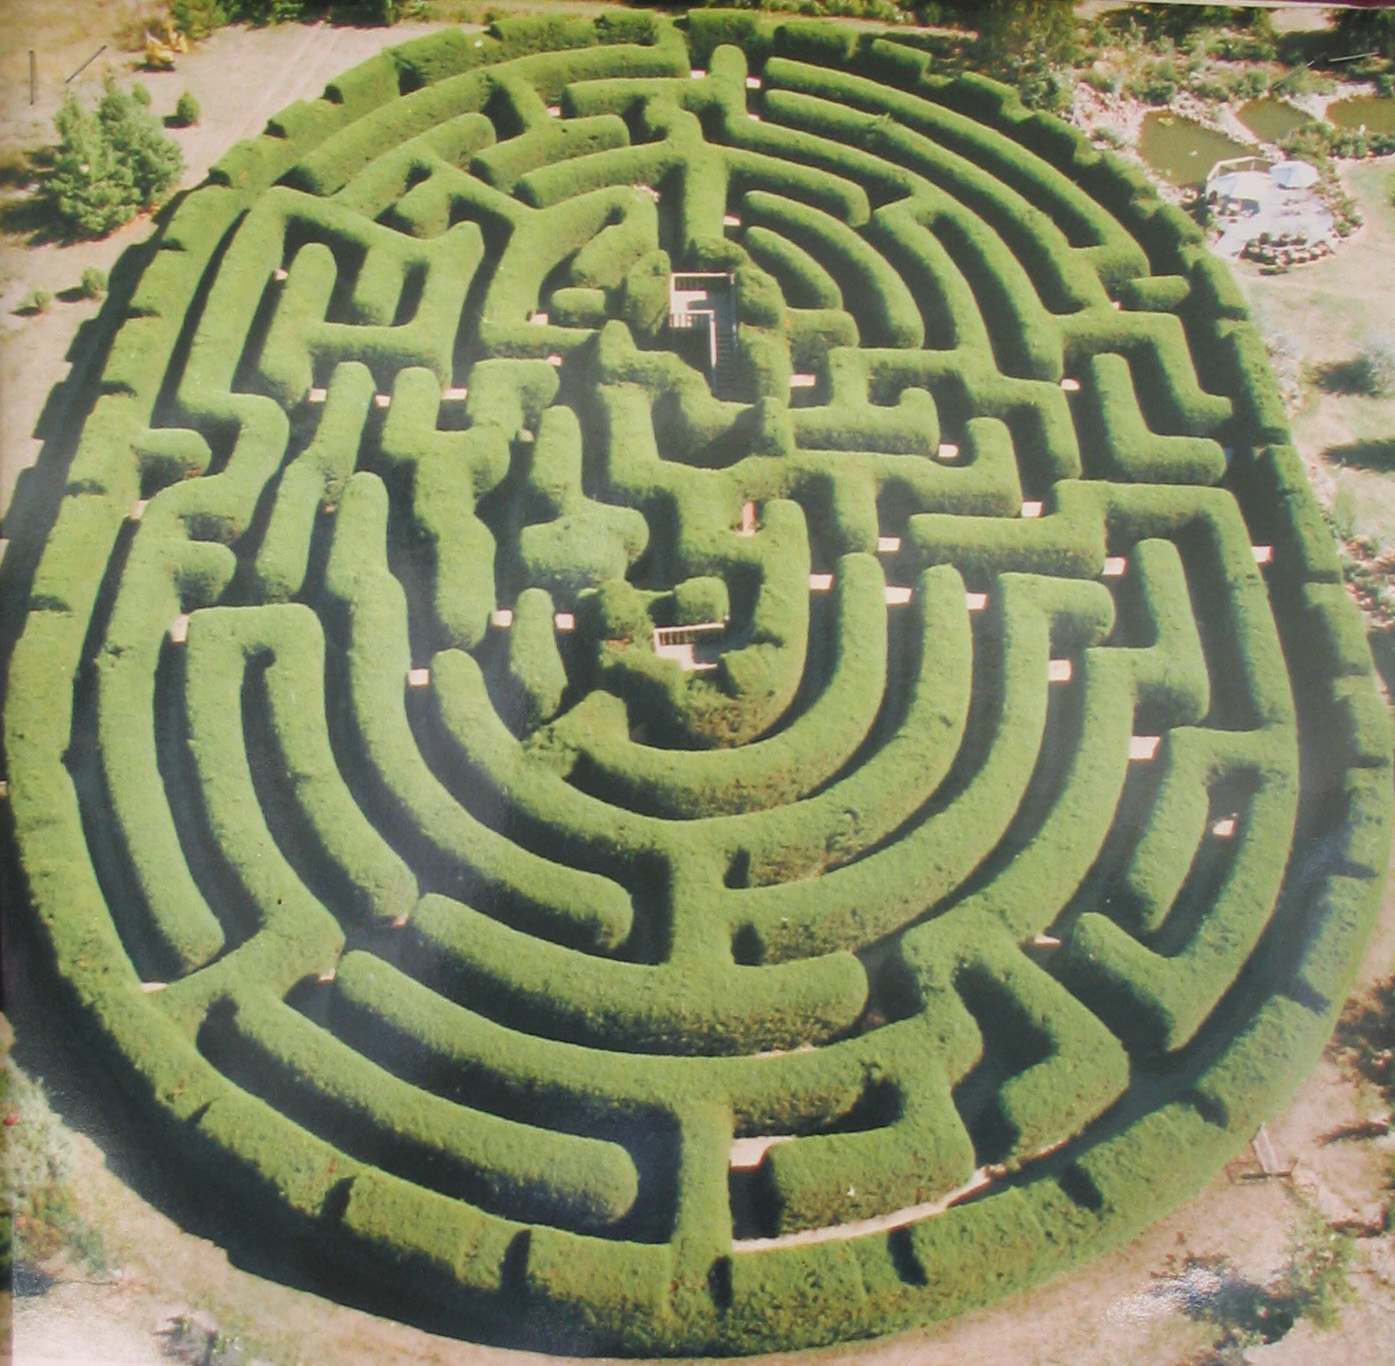 MorgansLists: A-MAZE-ING Images of Labyrinths And Mazes ...